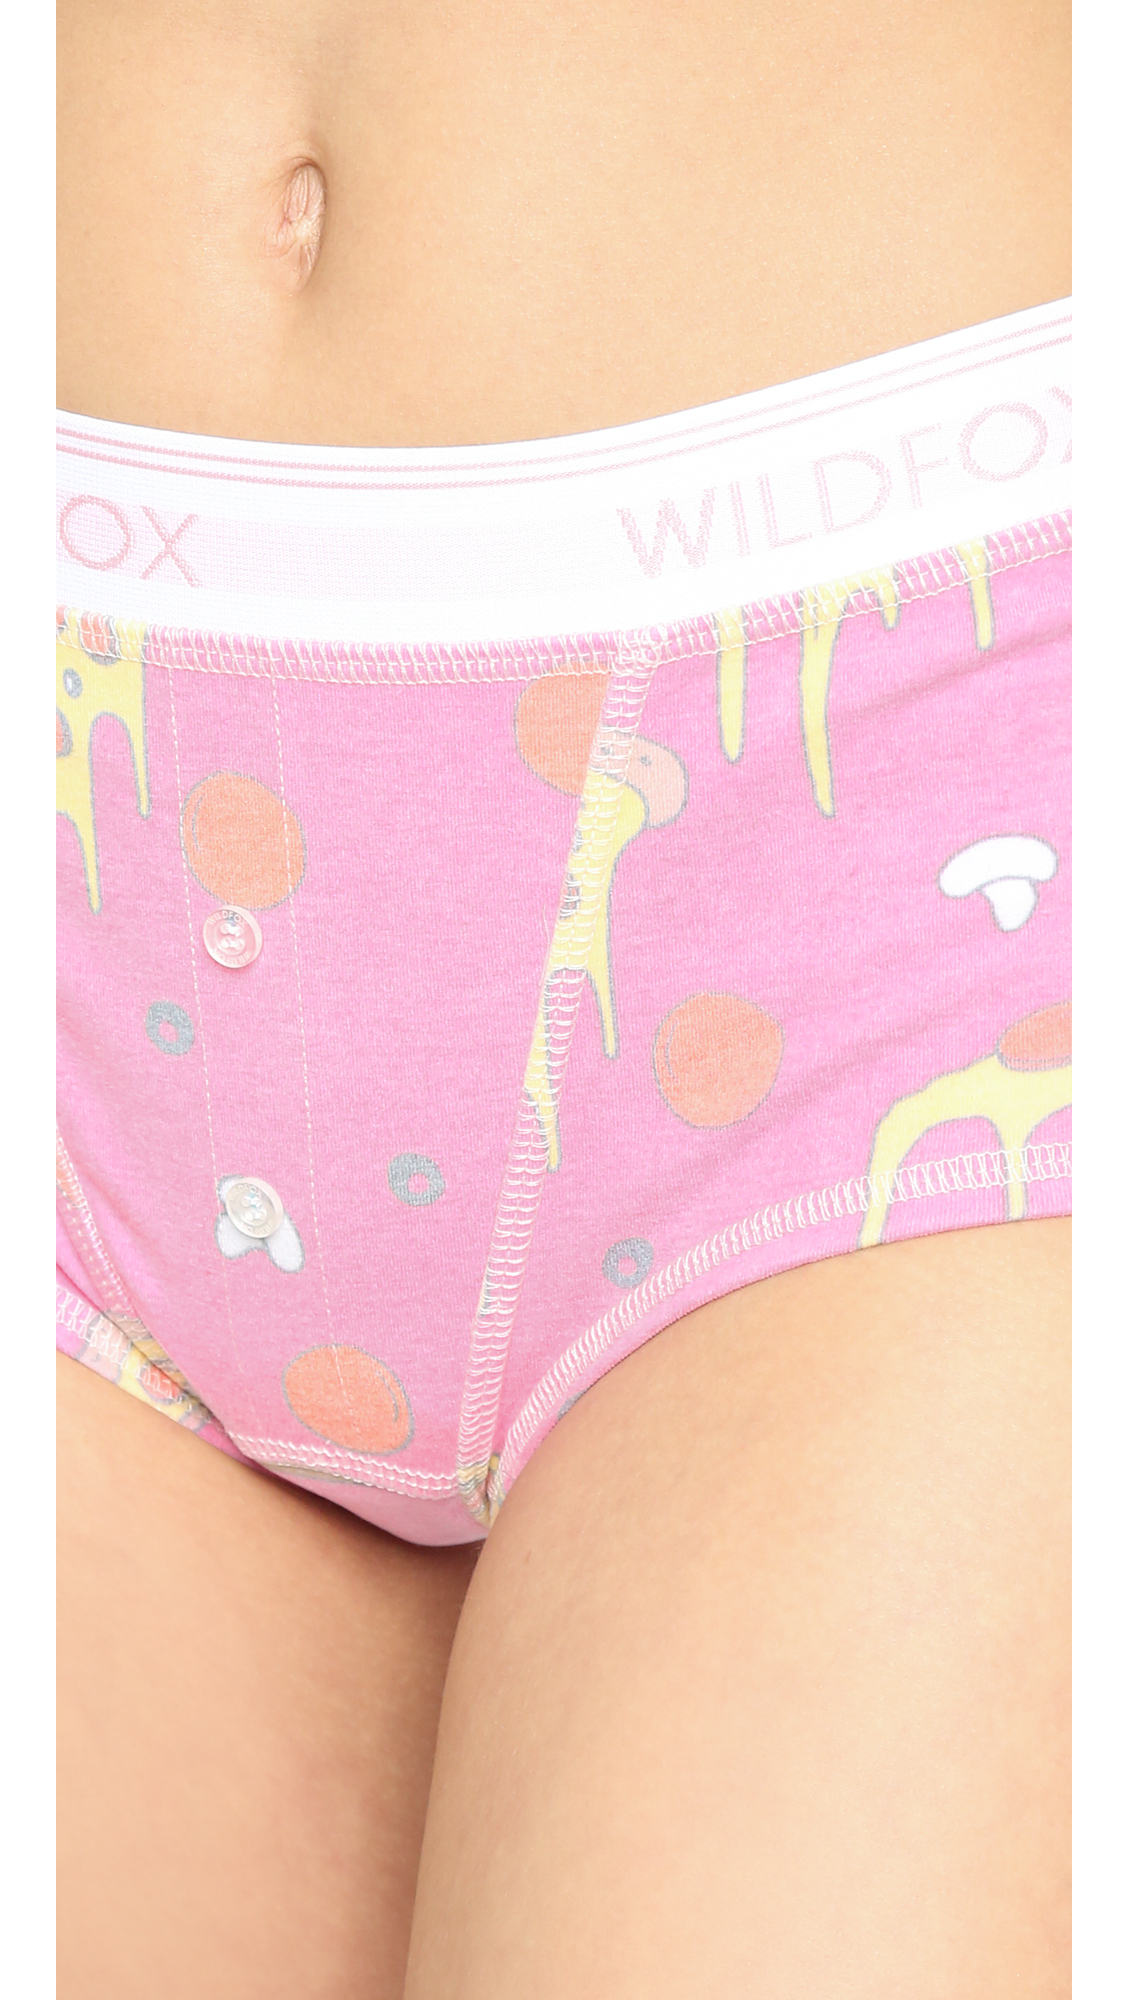 lyst - wildfox extra cheese tomboy panties - multi in purple